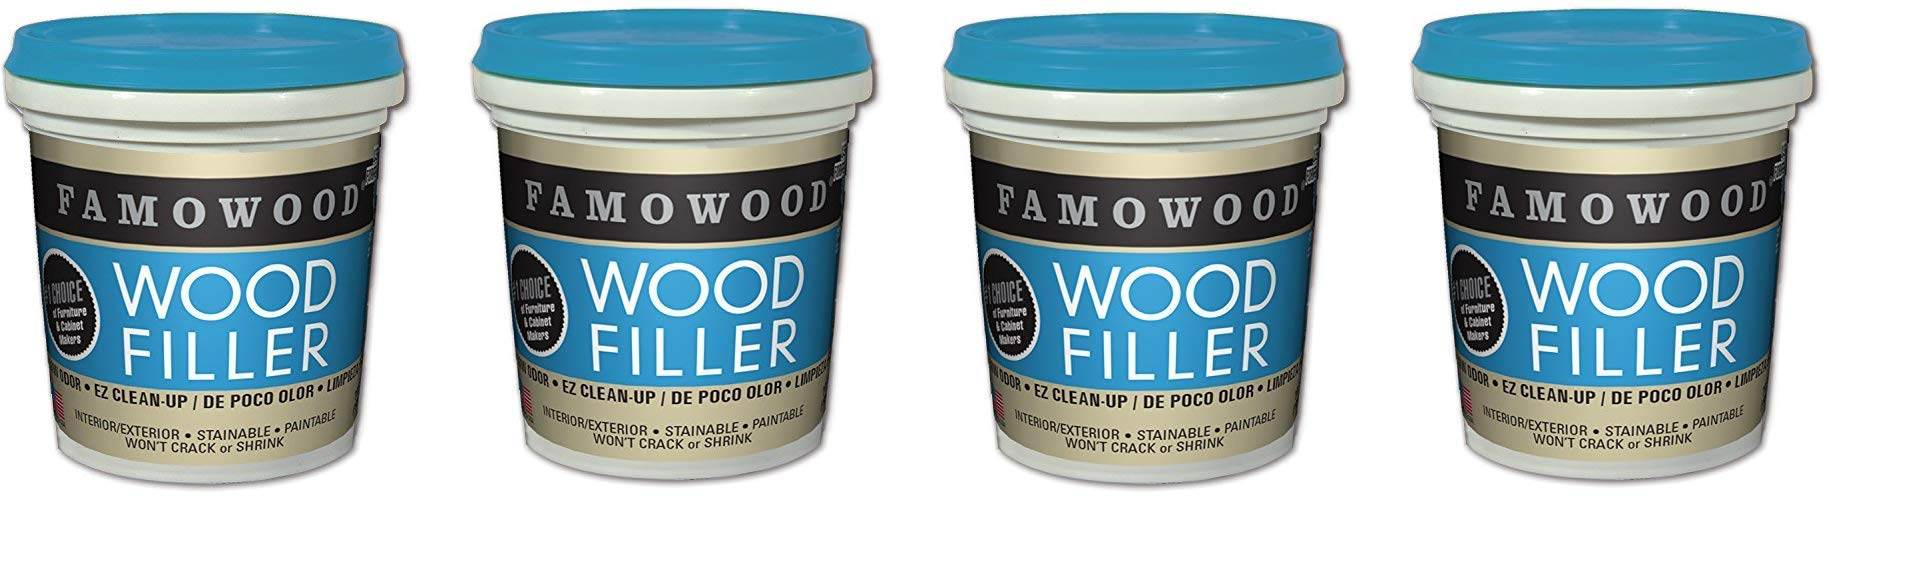 FamoWood 40042126 Latex Wood Filler - 1/4 Pint, Natural (4-Pack) by FamoWood (Image #1)